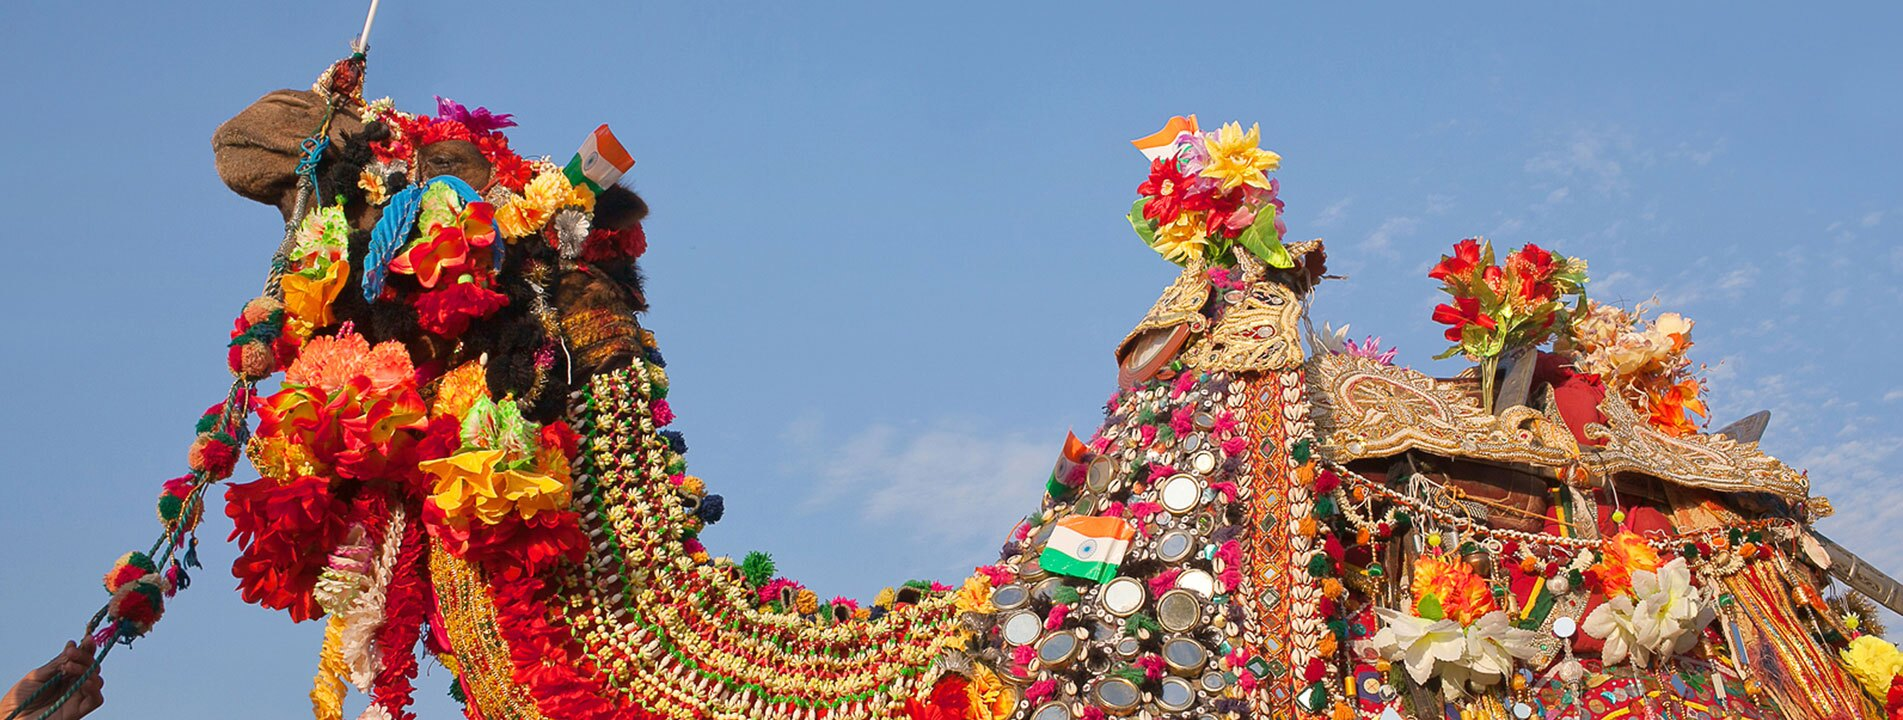 10-Day Royal Rajasthan and Camel Festival Tour